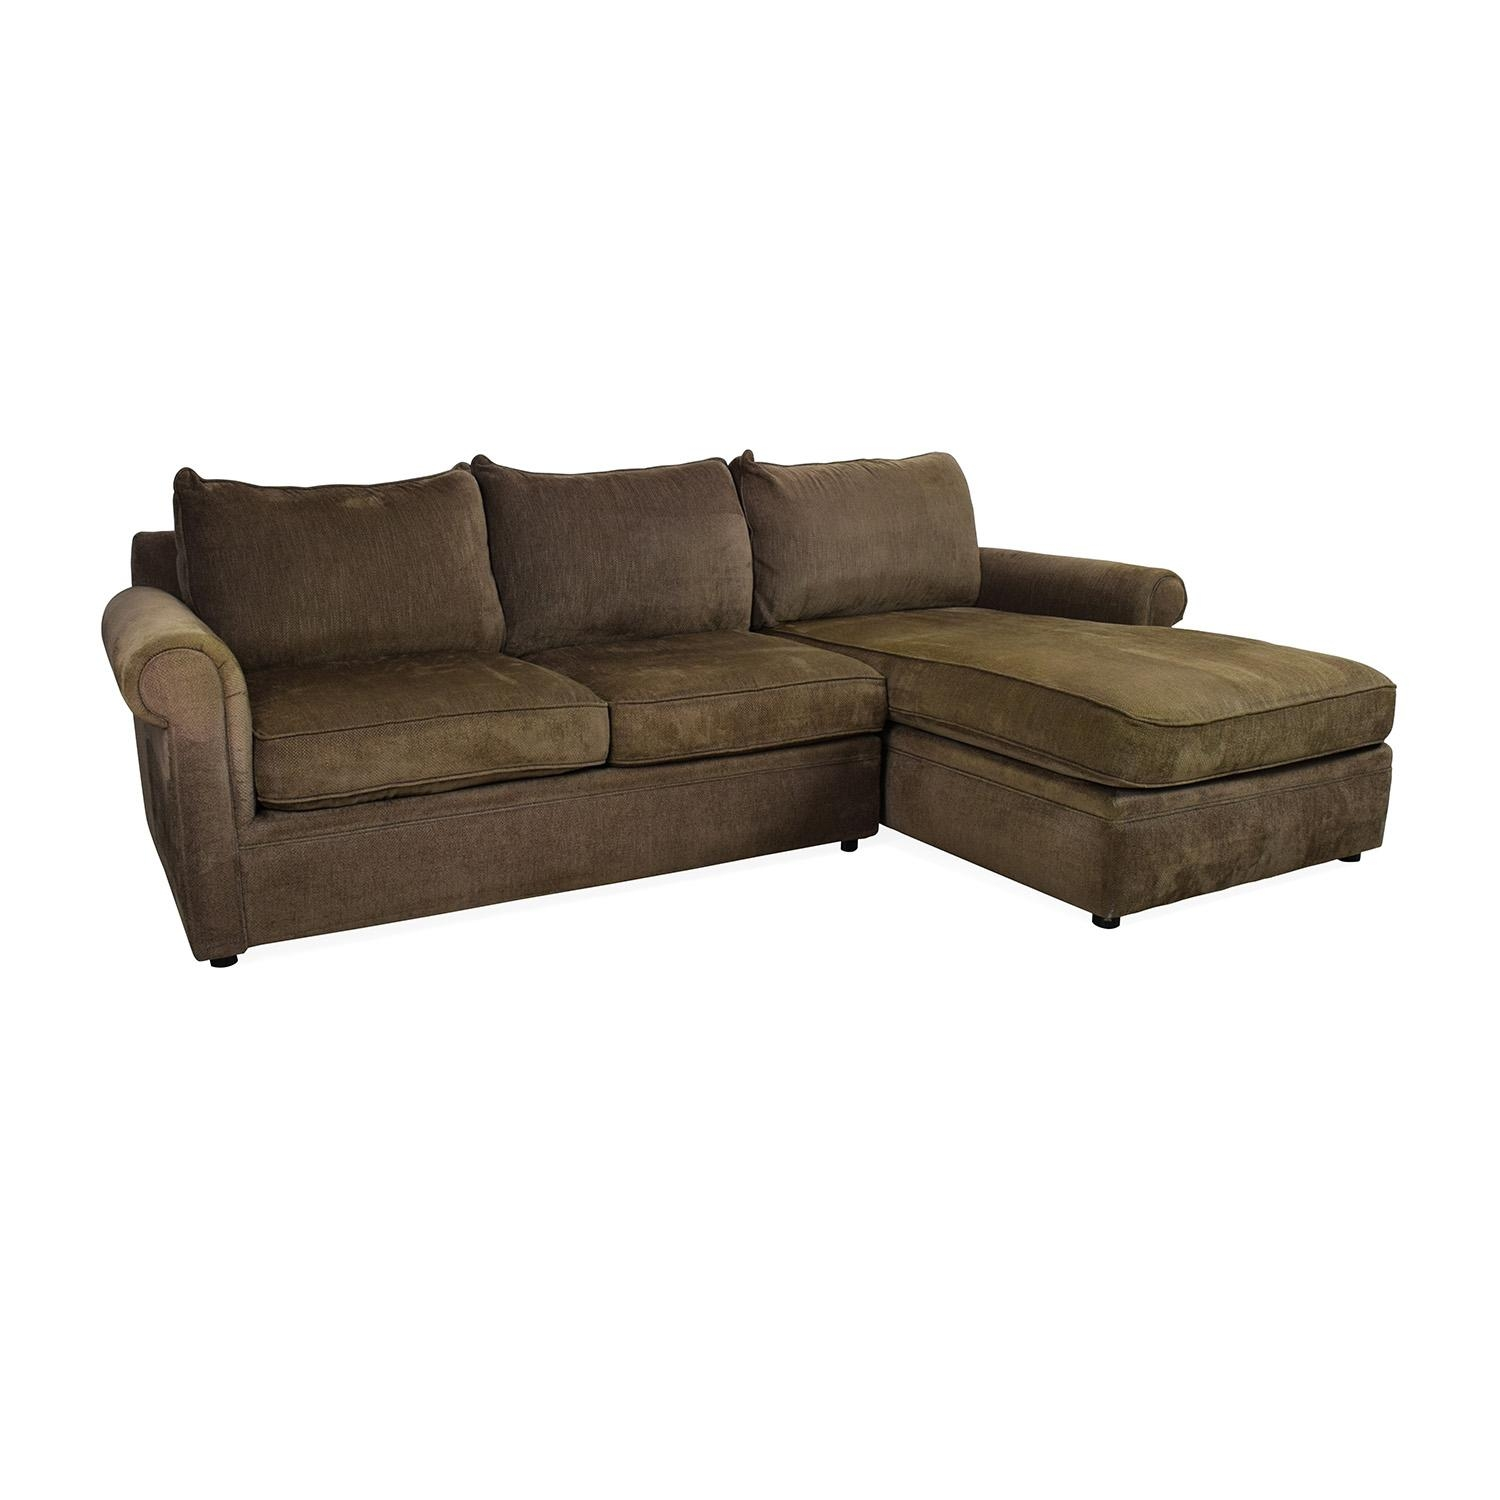 83% Off - Bloomingdales Bloomingdale's Sectional / Sofas inside Bloomingdales Sofas